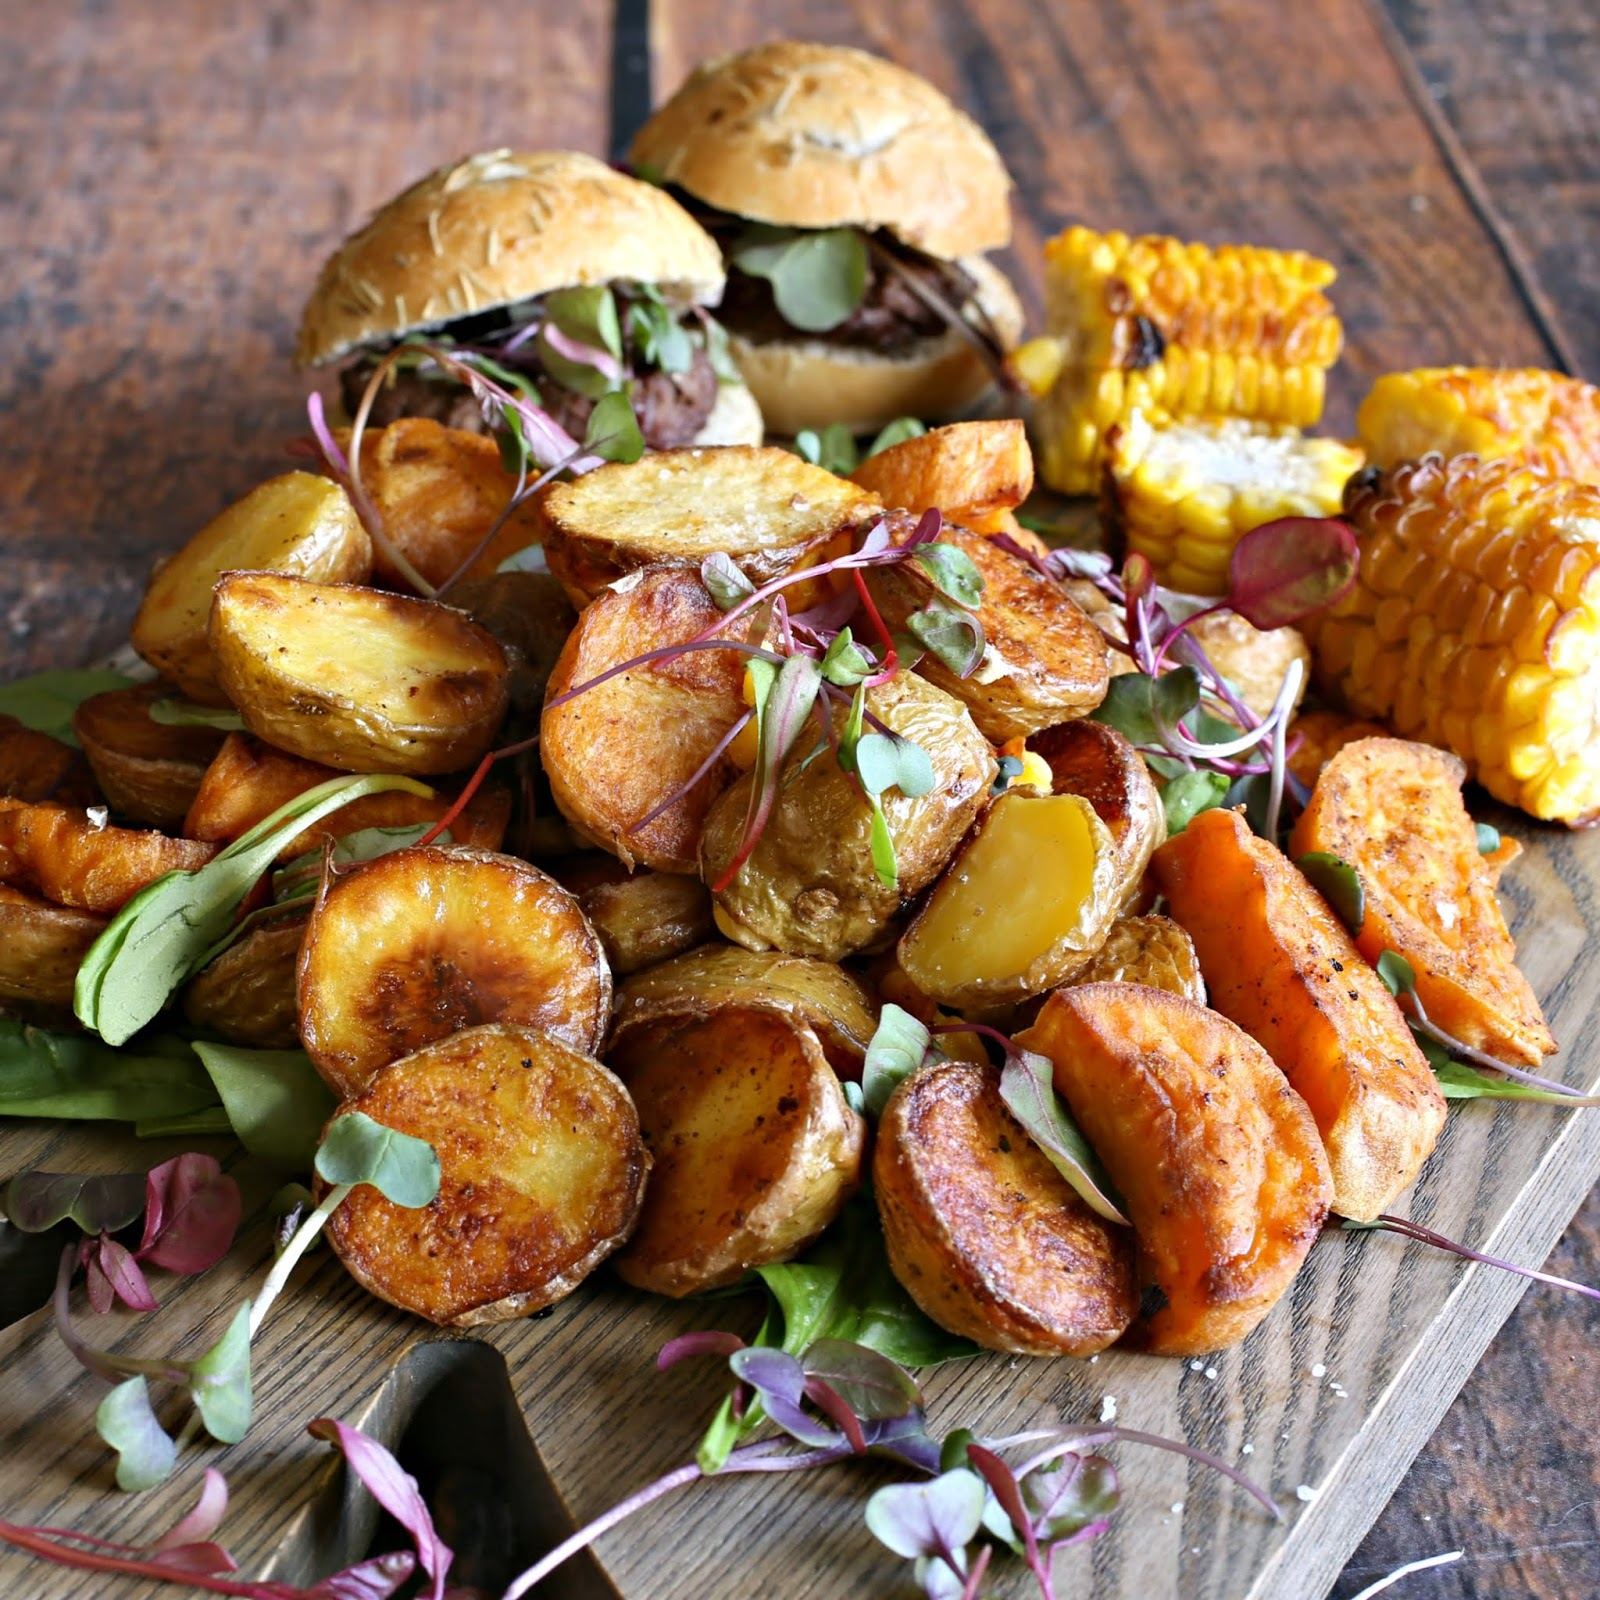 Recipe for a white and sweet potato salad roasted with ghee